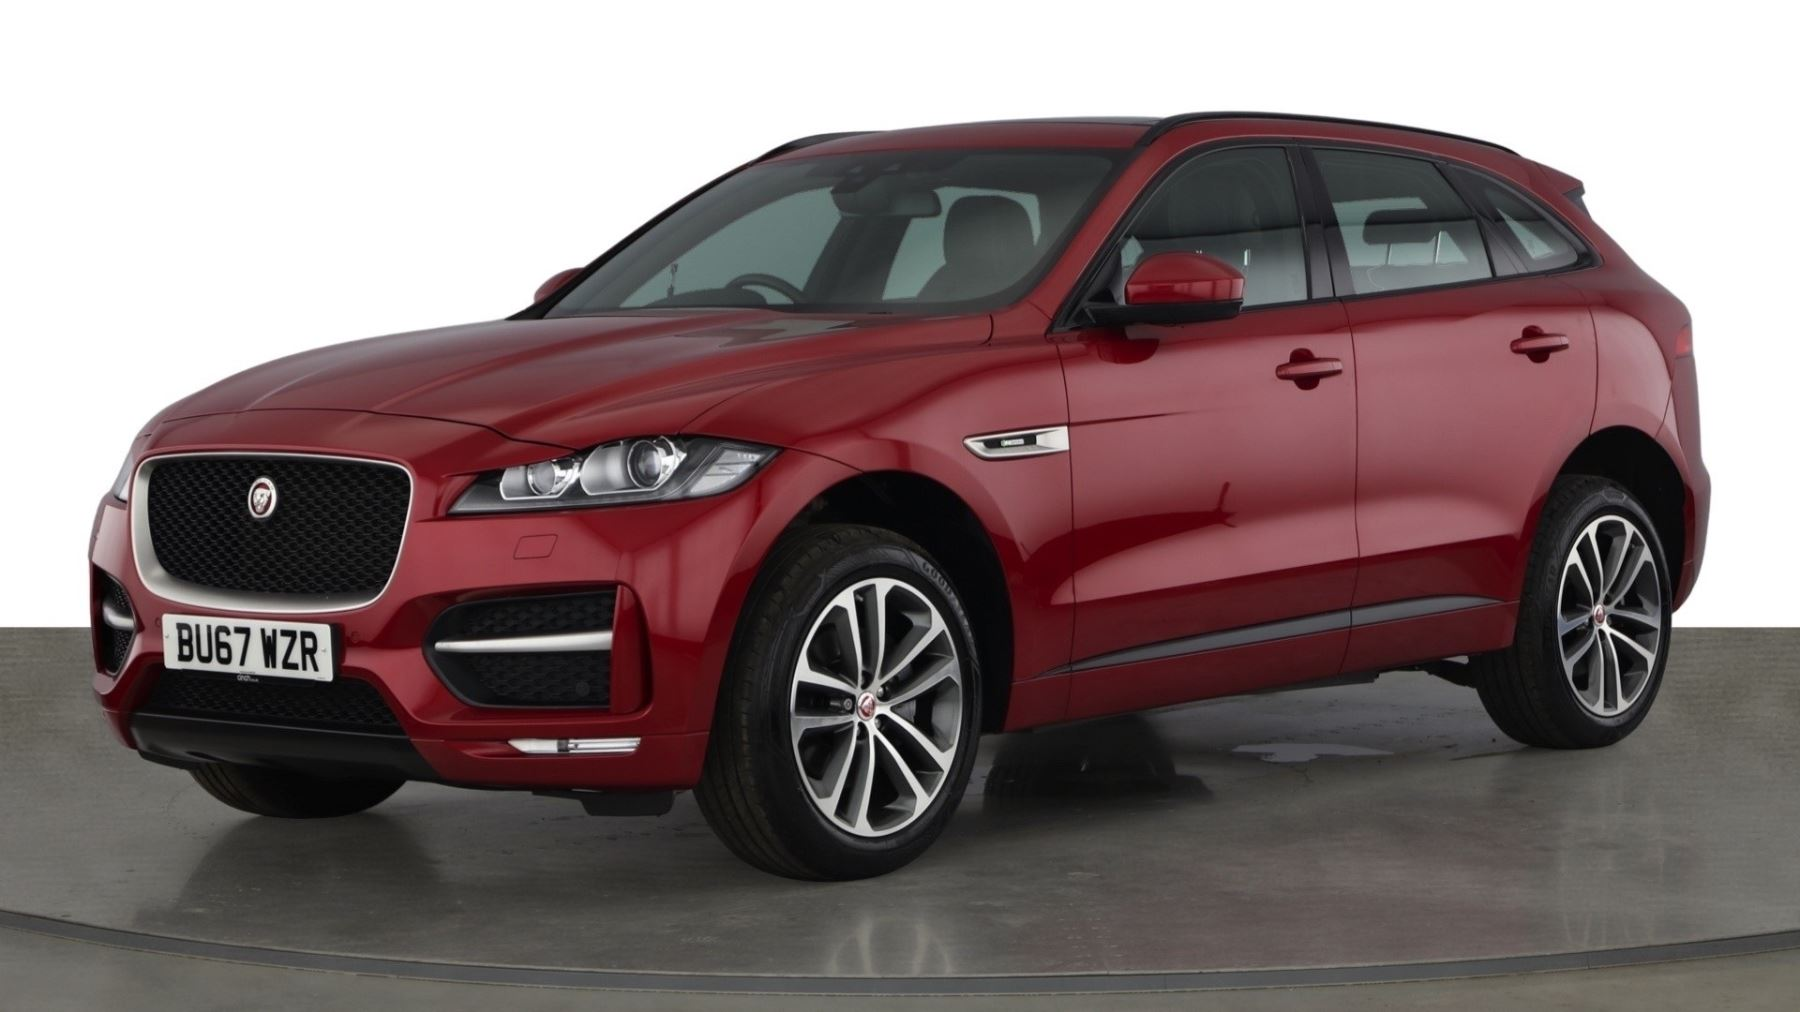 Jaguar F-PACE 2.0d R-Sport AWD - Sliding Panoramic Roof - Rear View Camera image 3